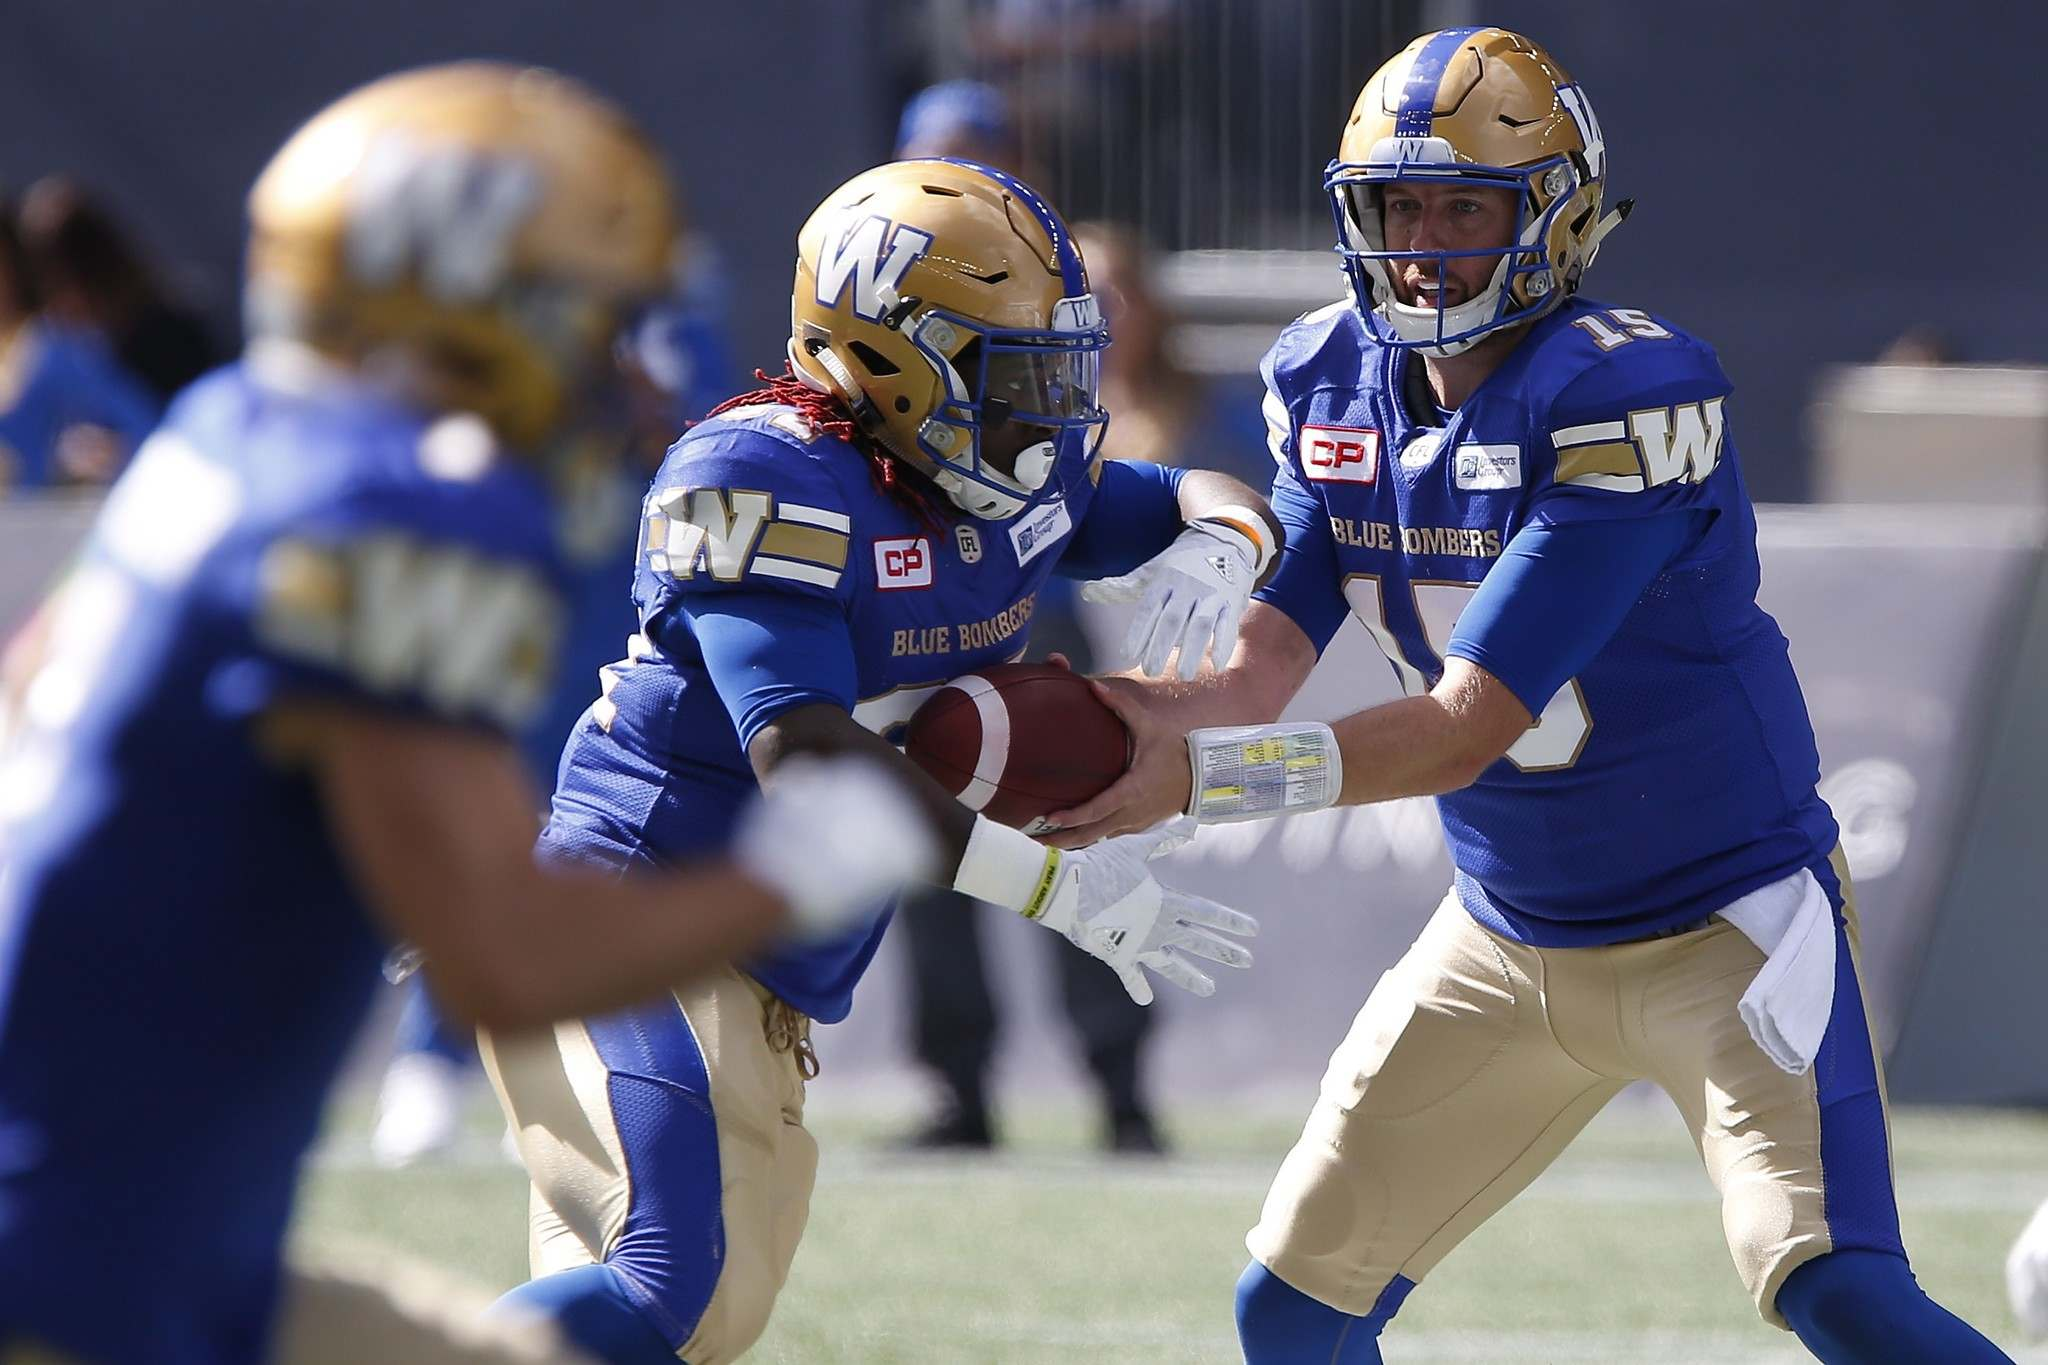 Game against Stamps will be the true measuring stick for Bombers - Winnipeg  Free Press